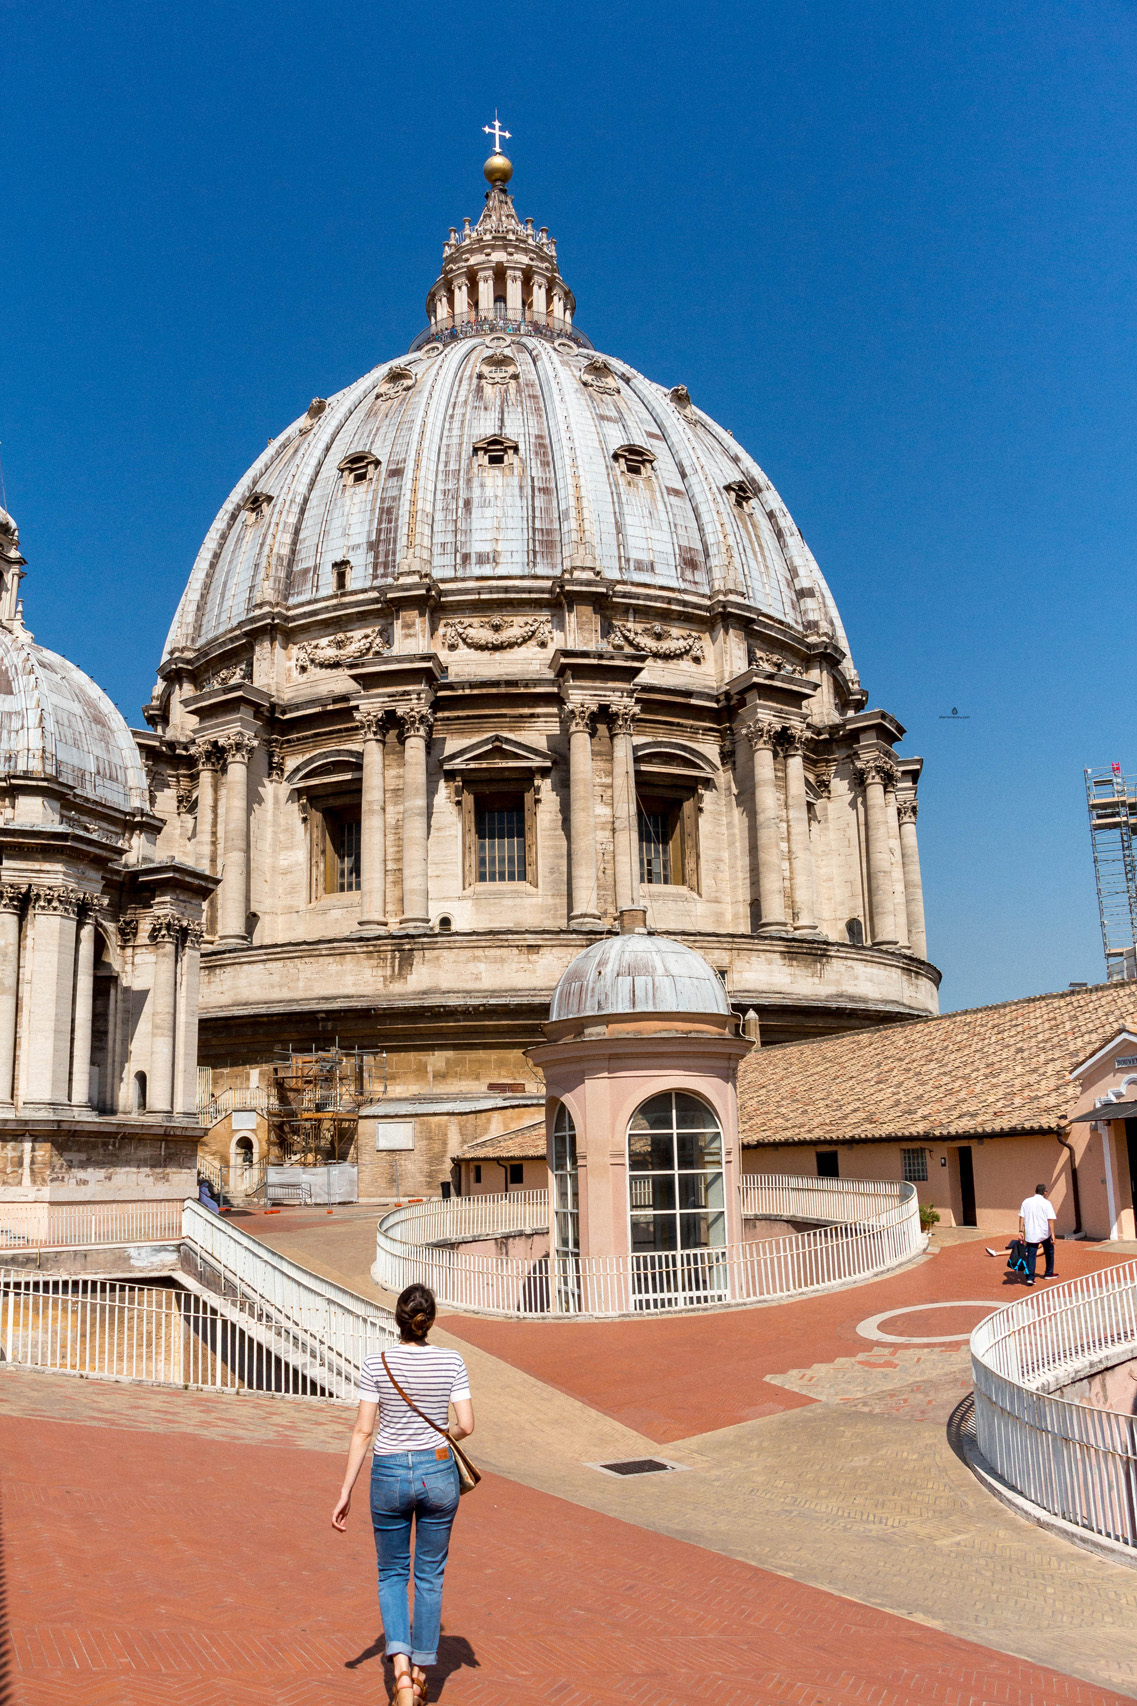 St. Peter's Basilica dome, Vatican